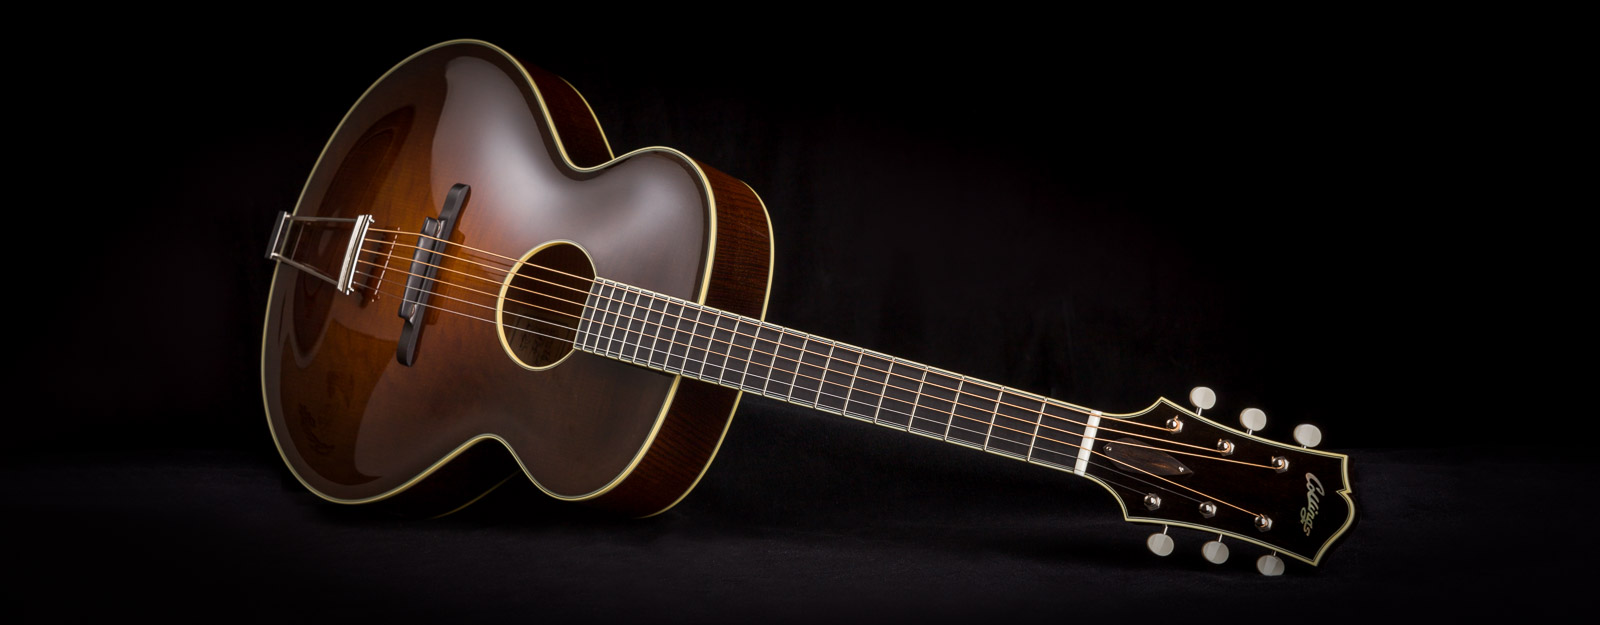 Gibson Procura Impedir Nova Patente da Collings